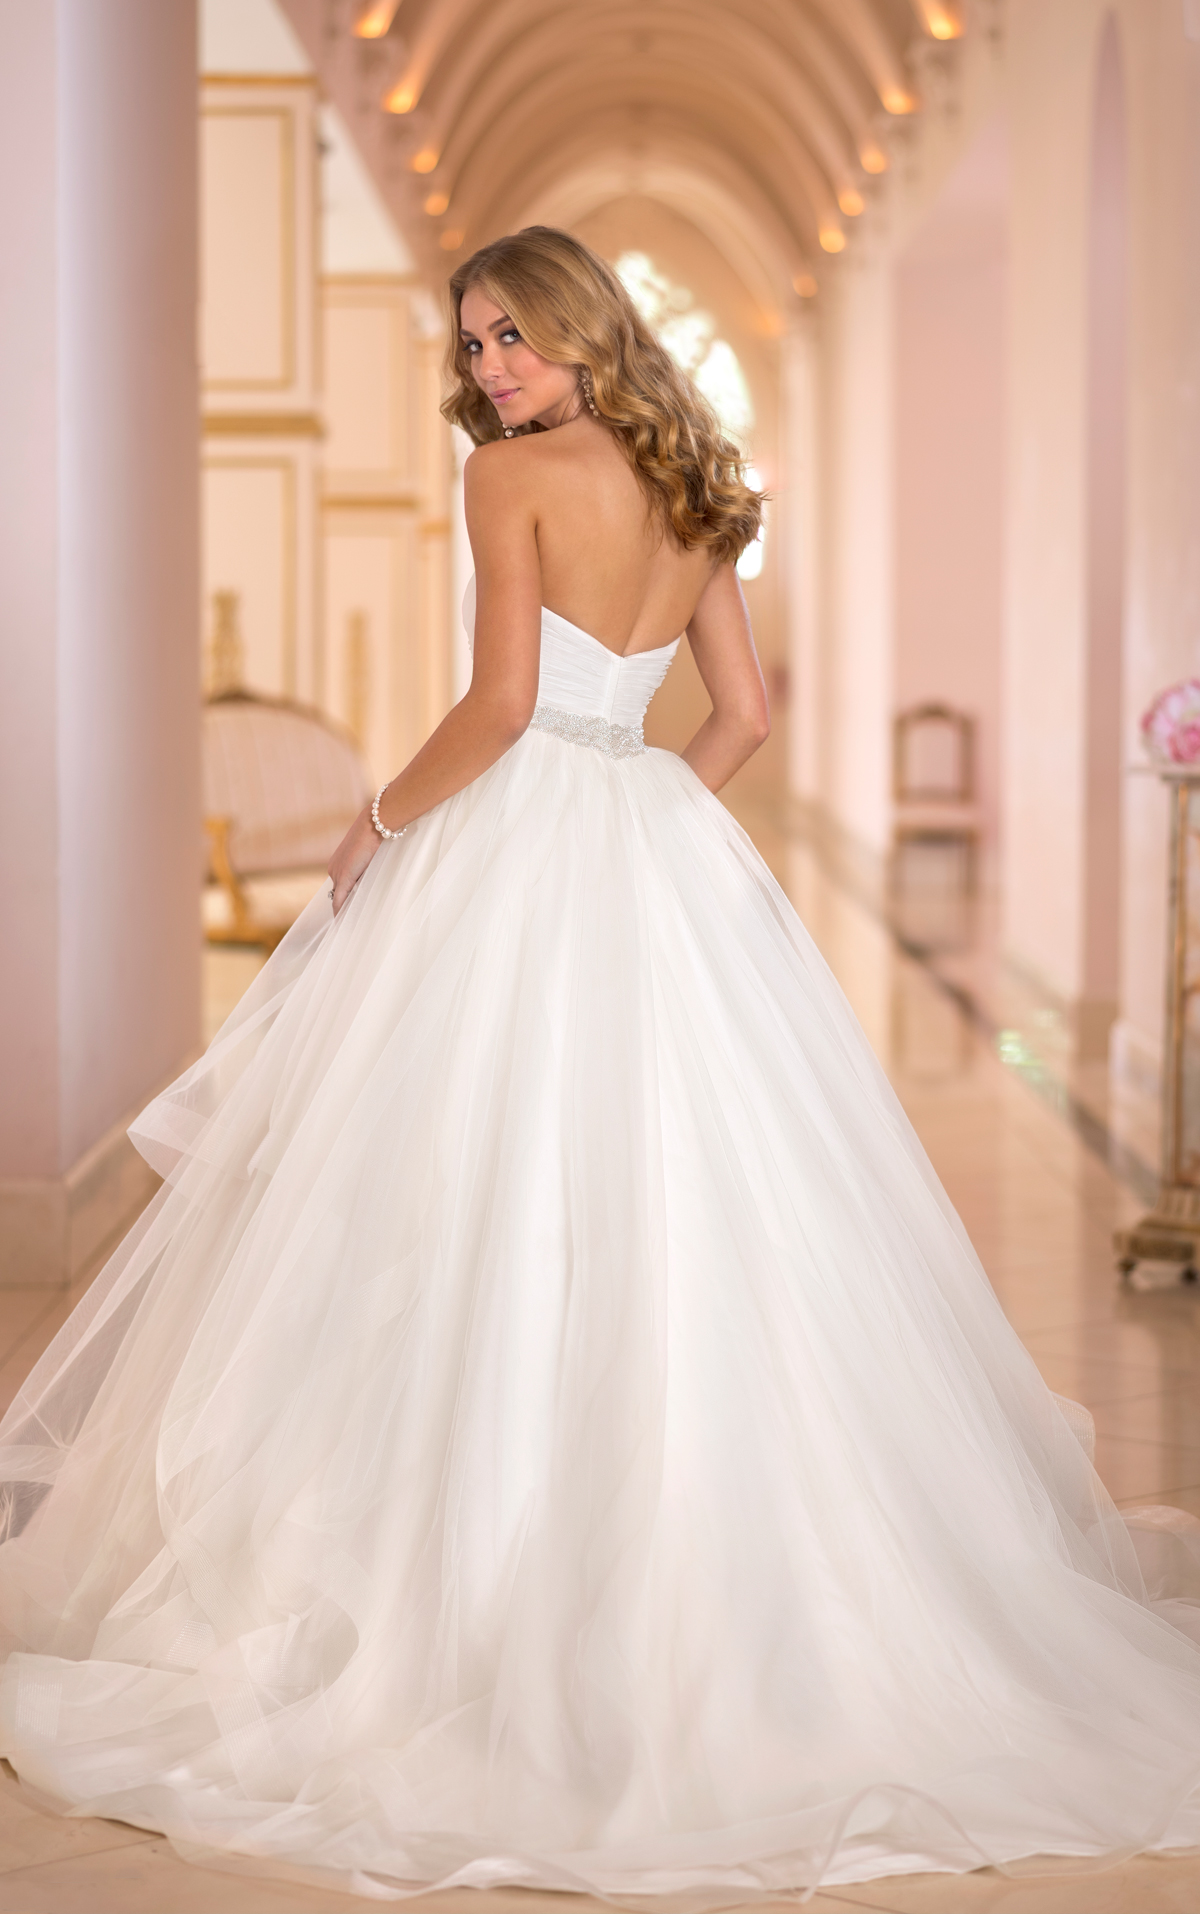 Glamorous Stella York Wedding Dresses 2014 Collection - MODwedding